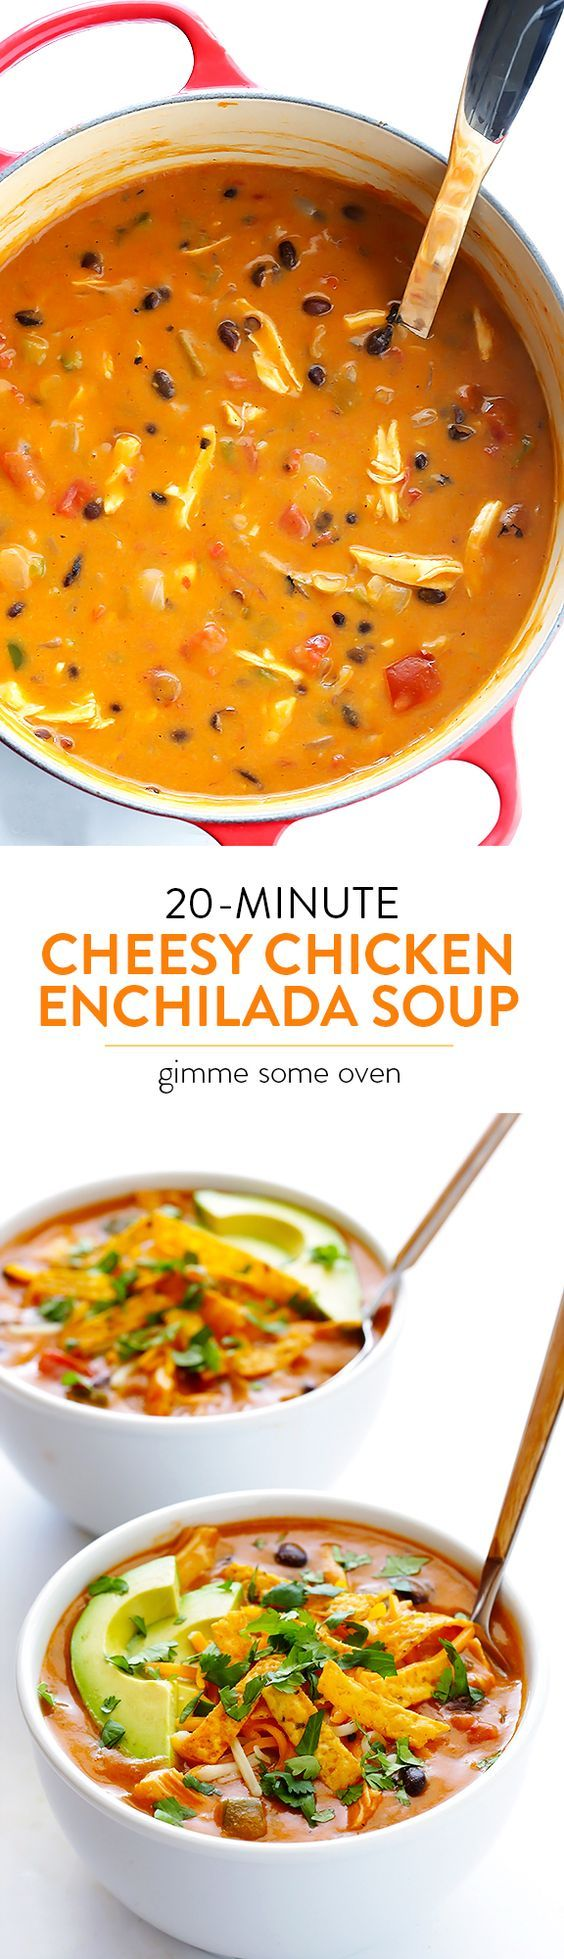 This delicious and flavorful soup is super-easy to make, and it's ready to go in about 20 minutes!  Even better!! | gimmesomeoven: